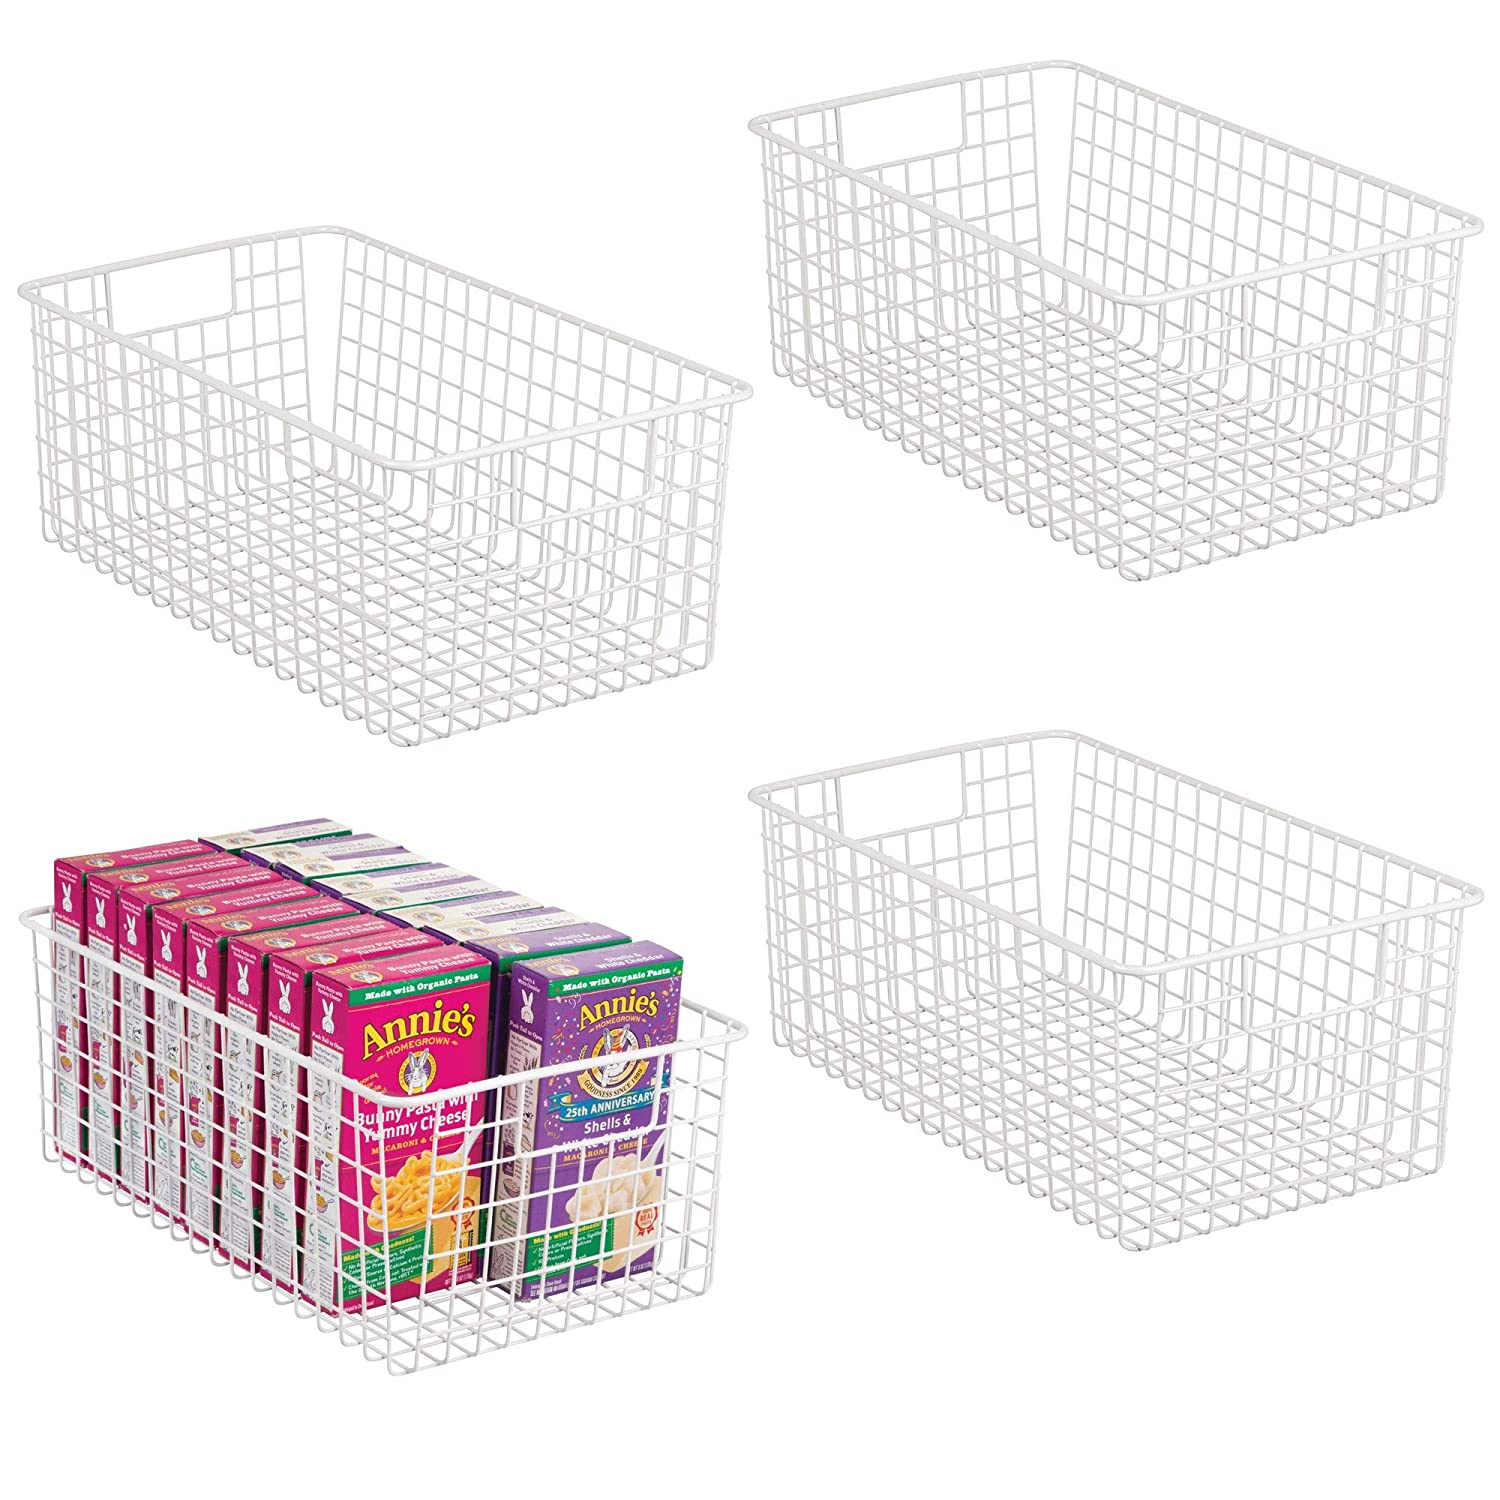 mDesign Farmhouse Decor Metal Wire Food Organizer Storage Bin Basket with Handles for Kitchen Cabinets, Pantry, Bathroom, Laundry Room, Closets, Garage - 16 x 9 x 6 in. - 4 Pack - Matte White